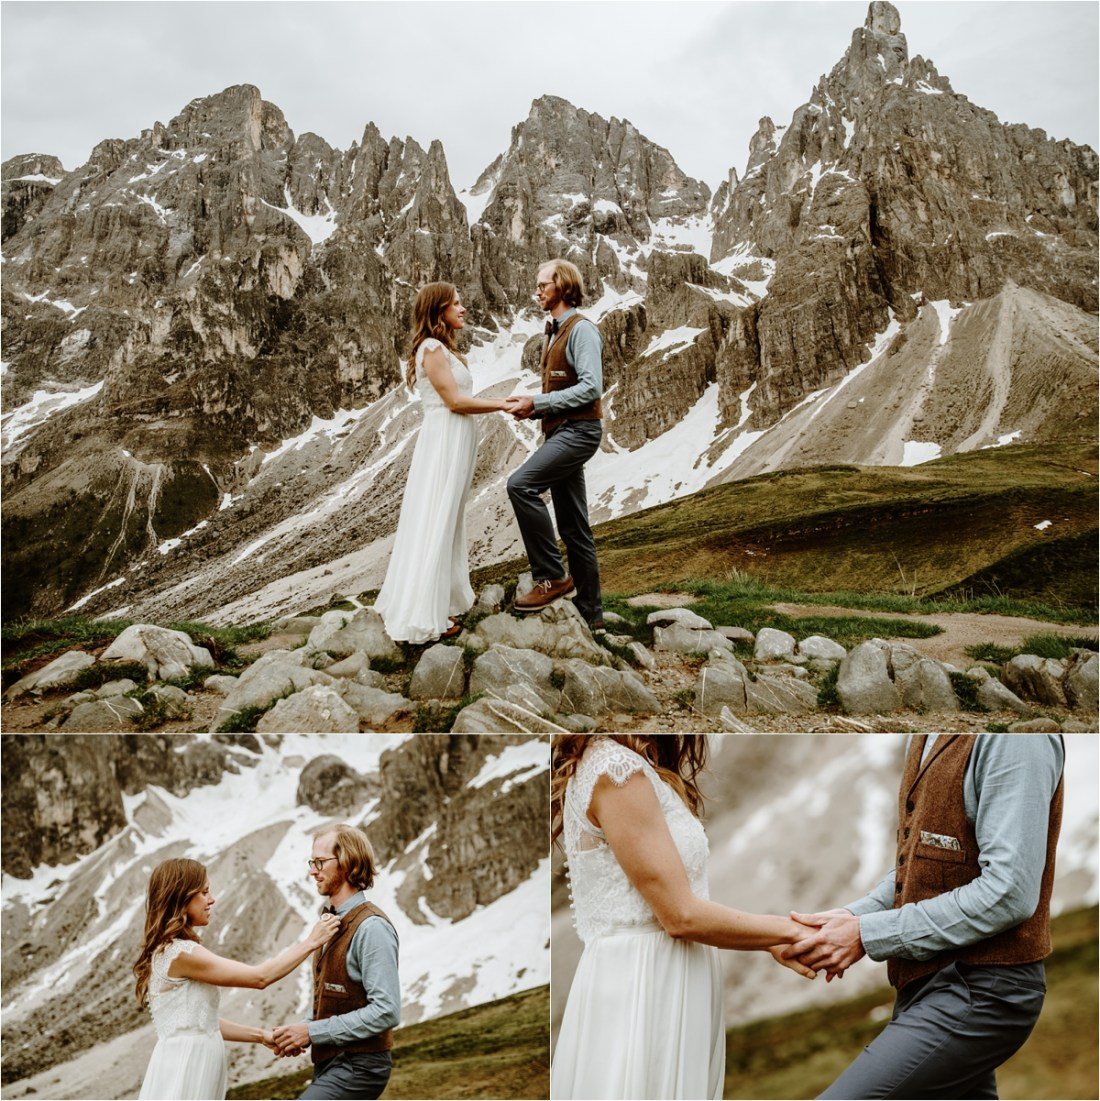 The bride adjusts the groom's bowtie during their hiking elopement in the Dolomites. Photography by Wild Connections Photography